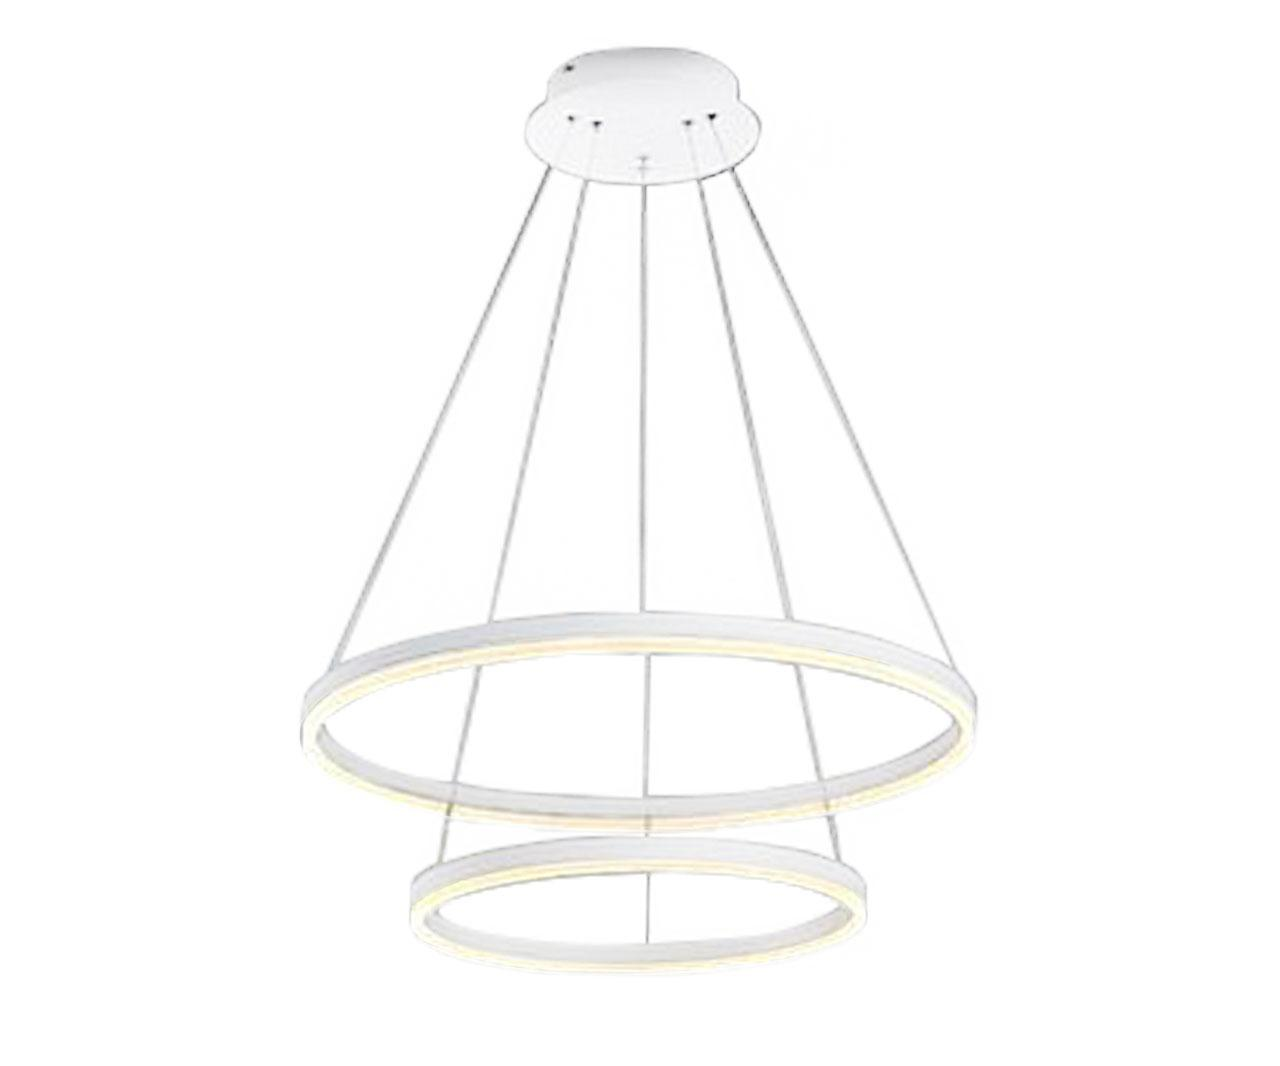 Подвесной светодиодный светильник Kink Light Тор 08219B,01(3000K-6000K) diy 3w 3000k 315lm warm white light round cob led module 9 11v